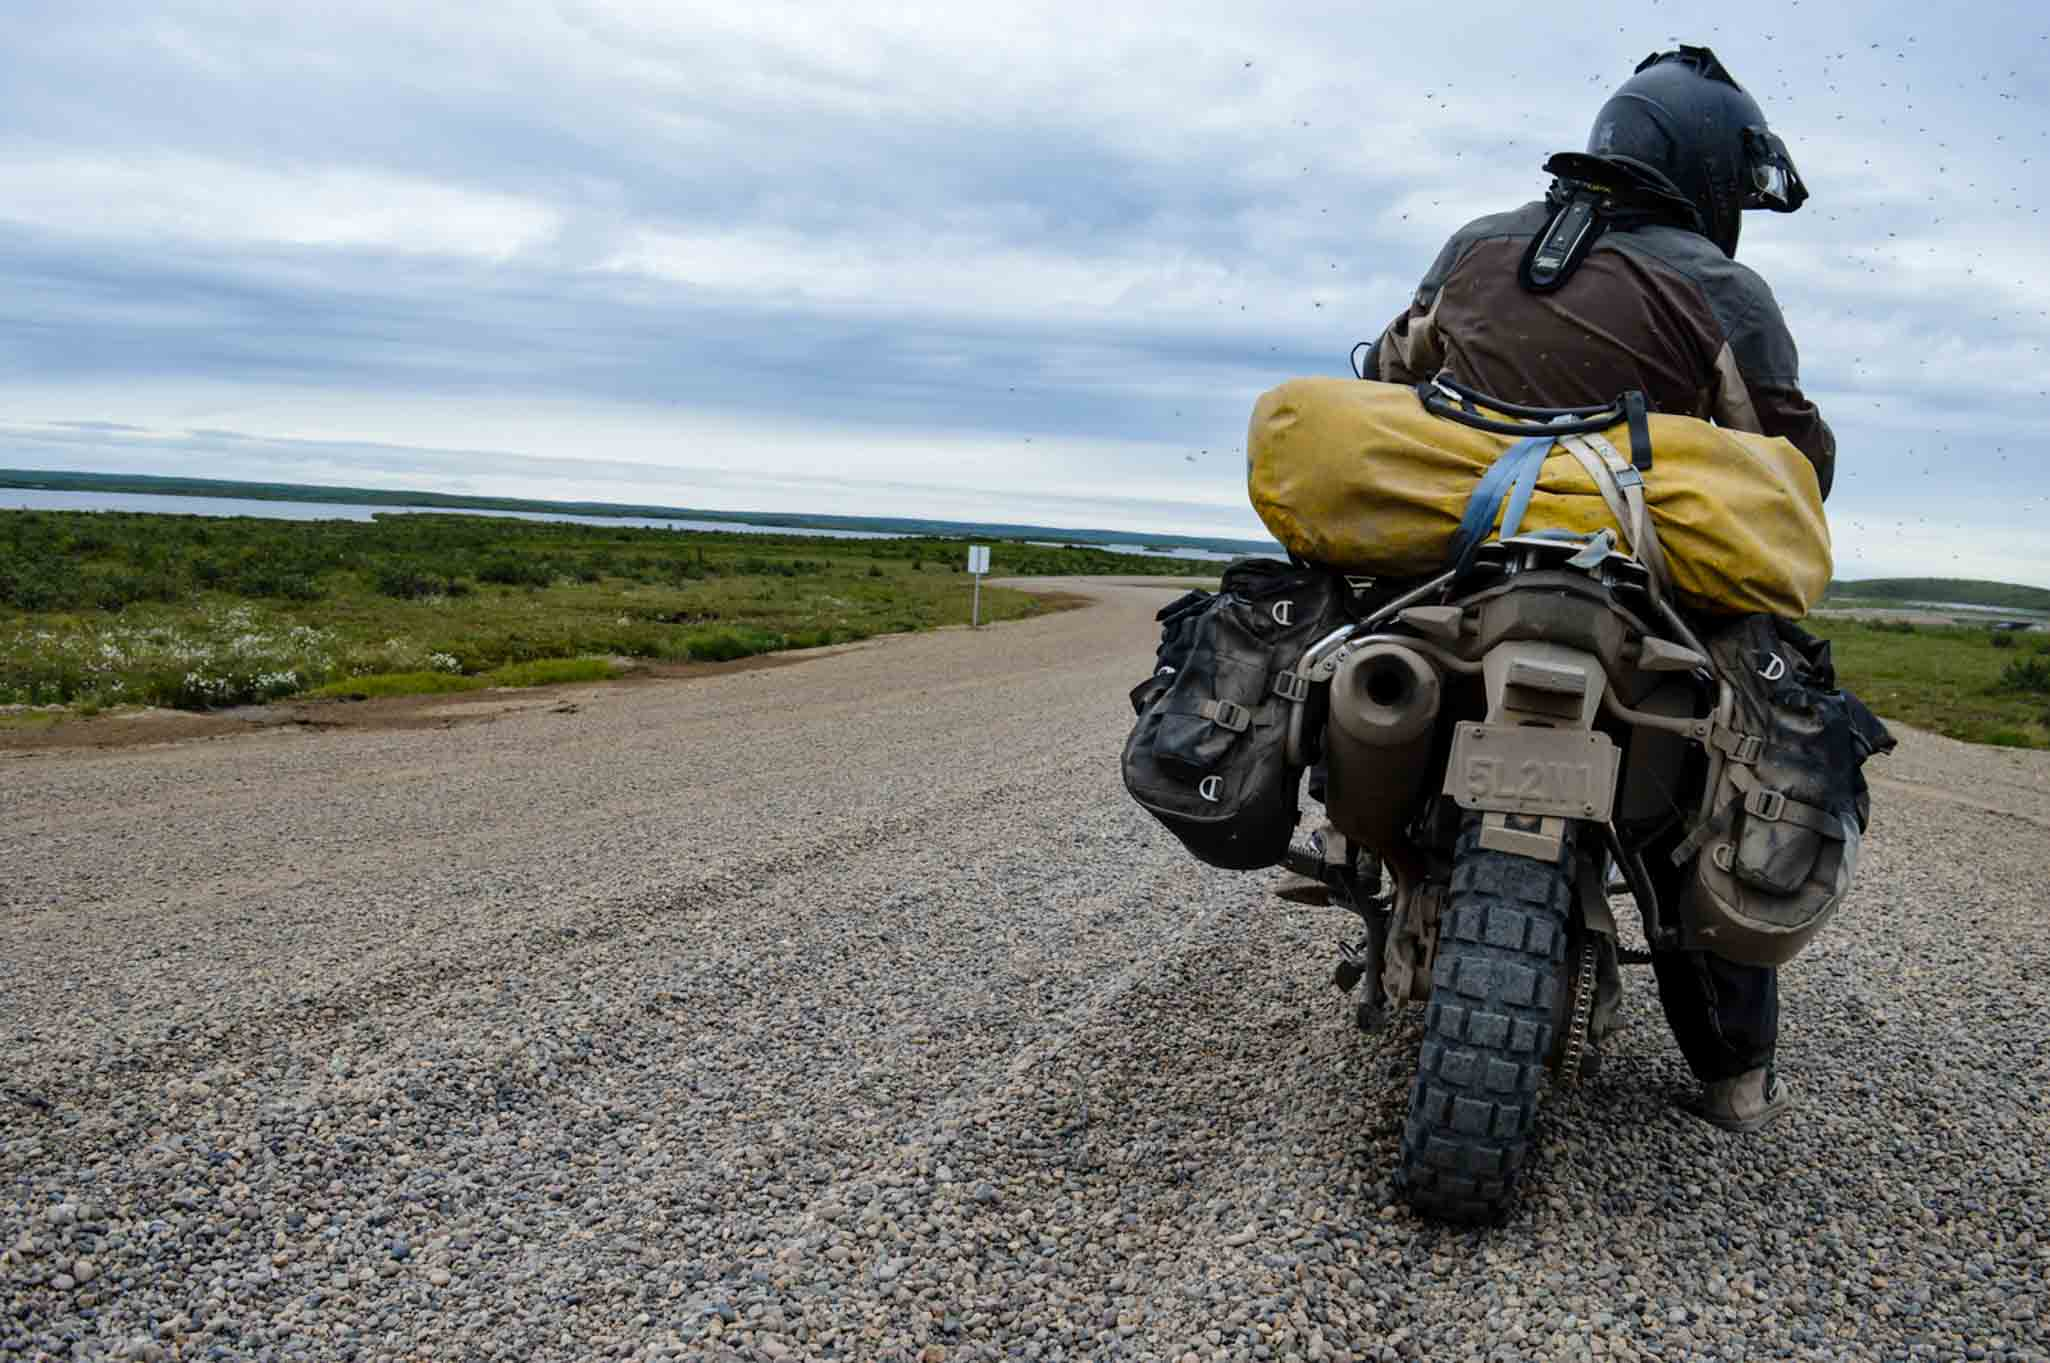 The worst terrain will show up inferior quality motorcycle gear. Turkana soft luggage motorbike gear are tough build to sustain the worst of travel